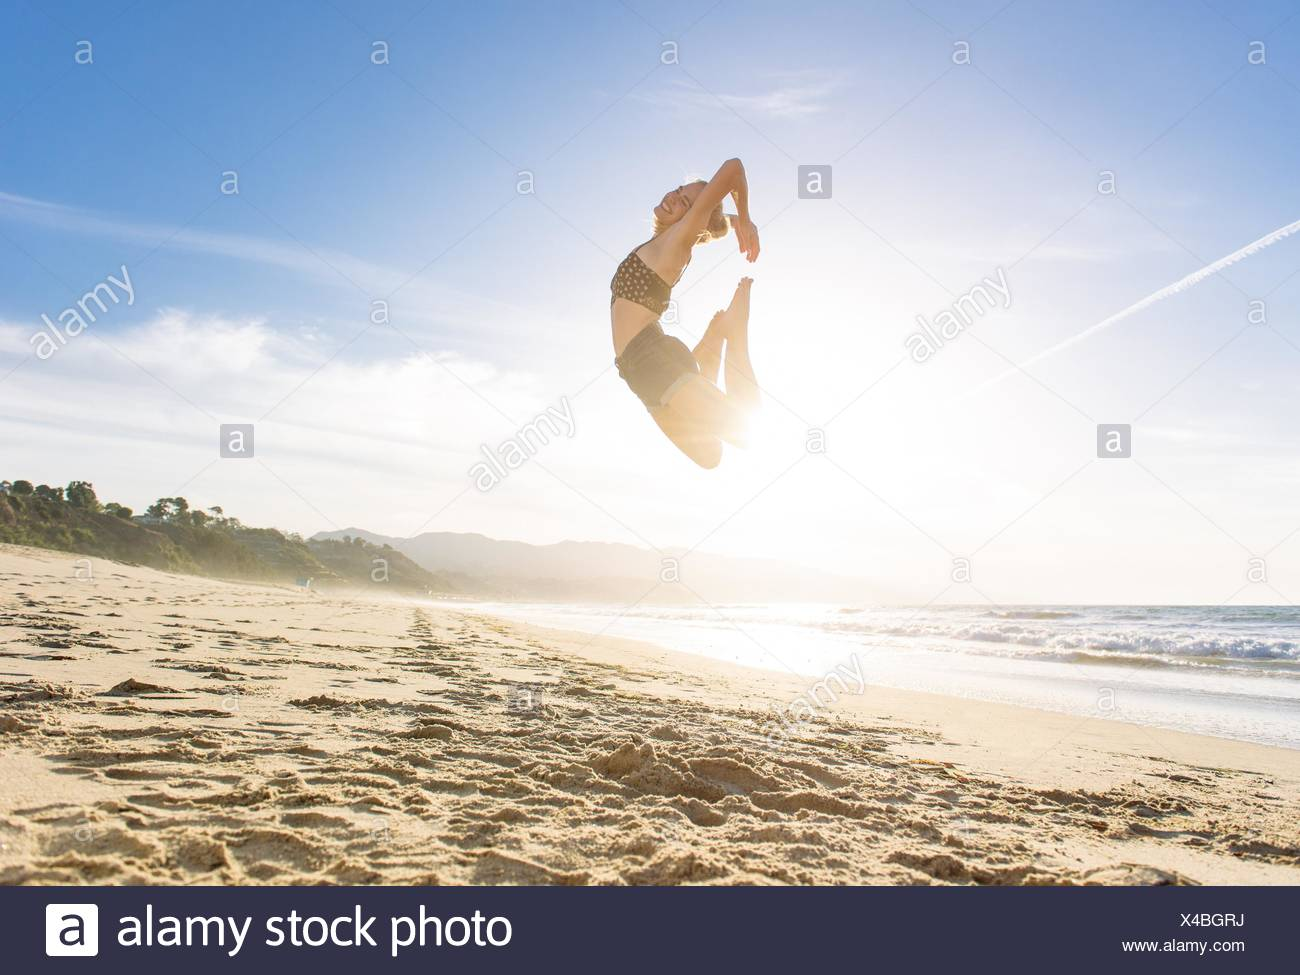 Young woman on beach, leaping in air, sunset - Stock Image